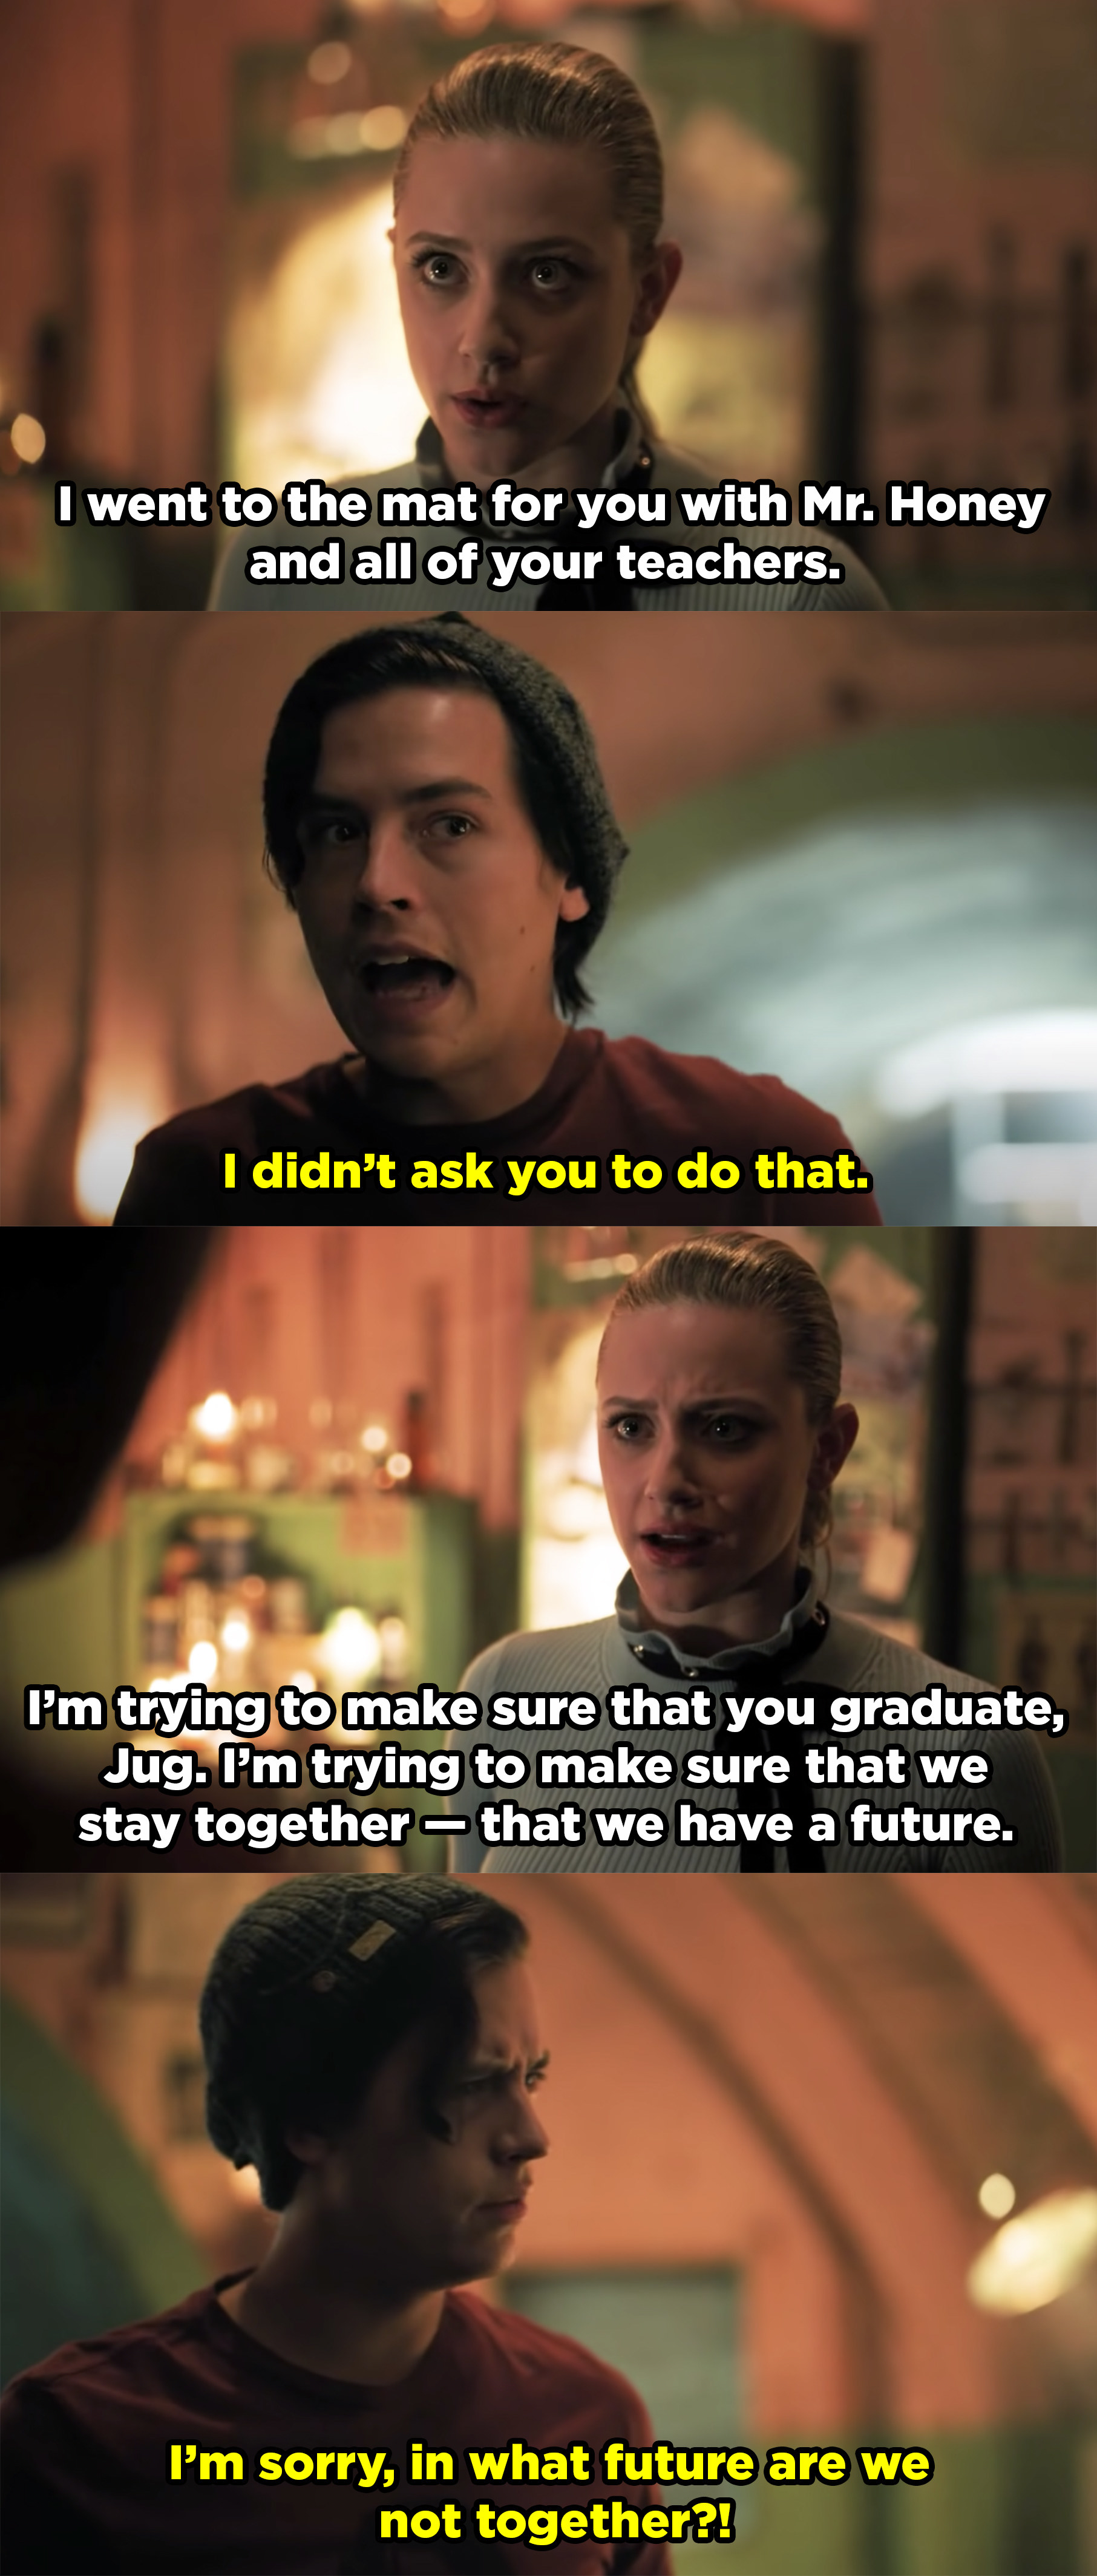 Betty telling Jughead she's trying to help him and make sure he graduates so they can be together and he tells her he didn't ask for her help and is mad they'd even consider breaking up.